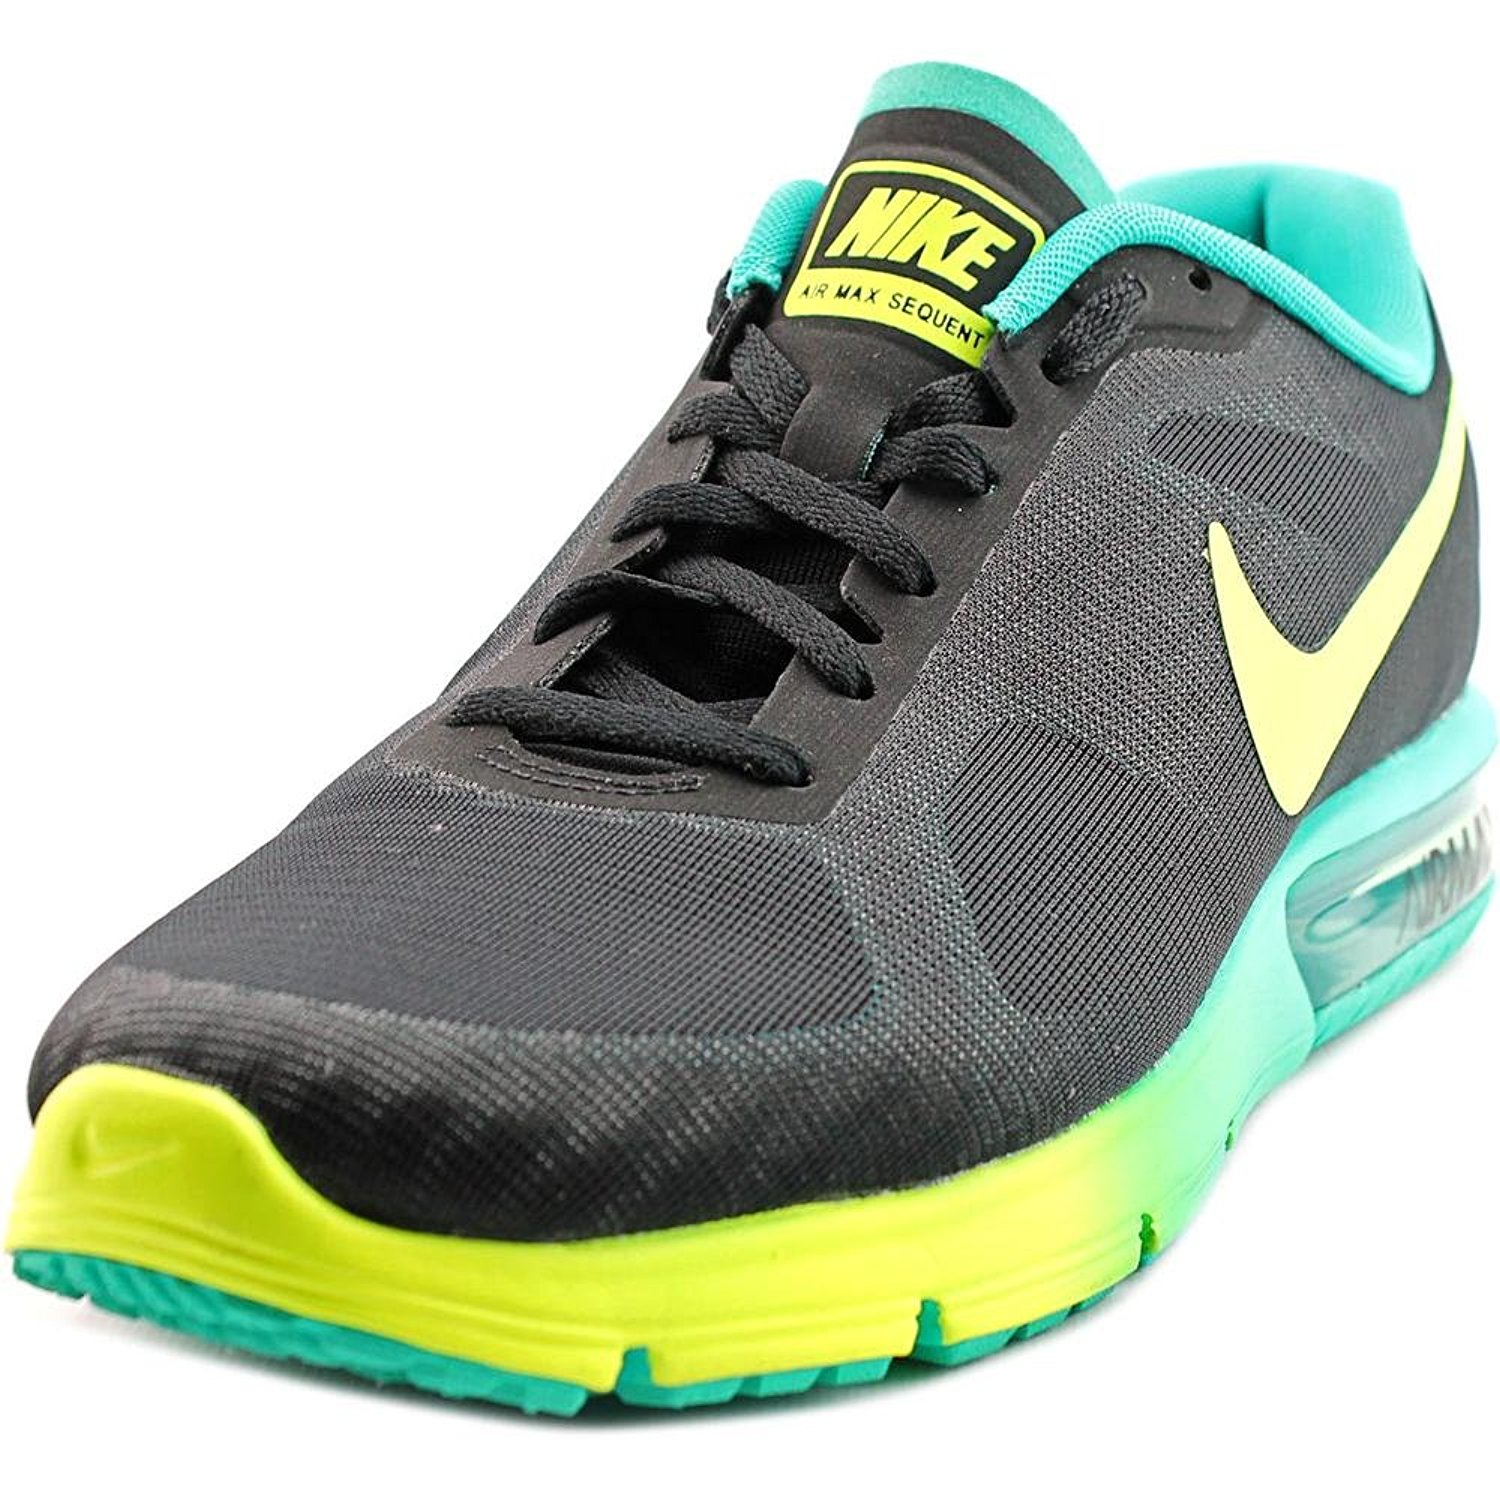 Cheap Damens Air Max 95, find Damens Air Max ... 95 deals on line at ... Max 9ae1a6